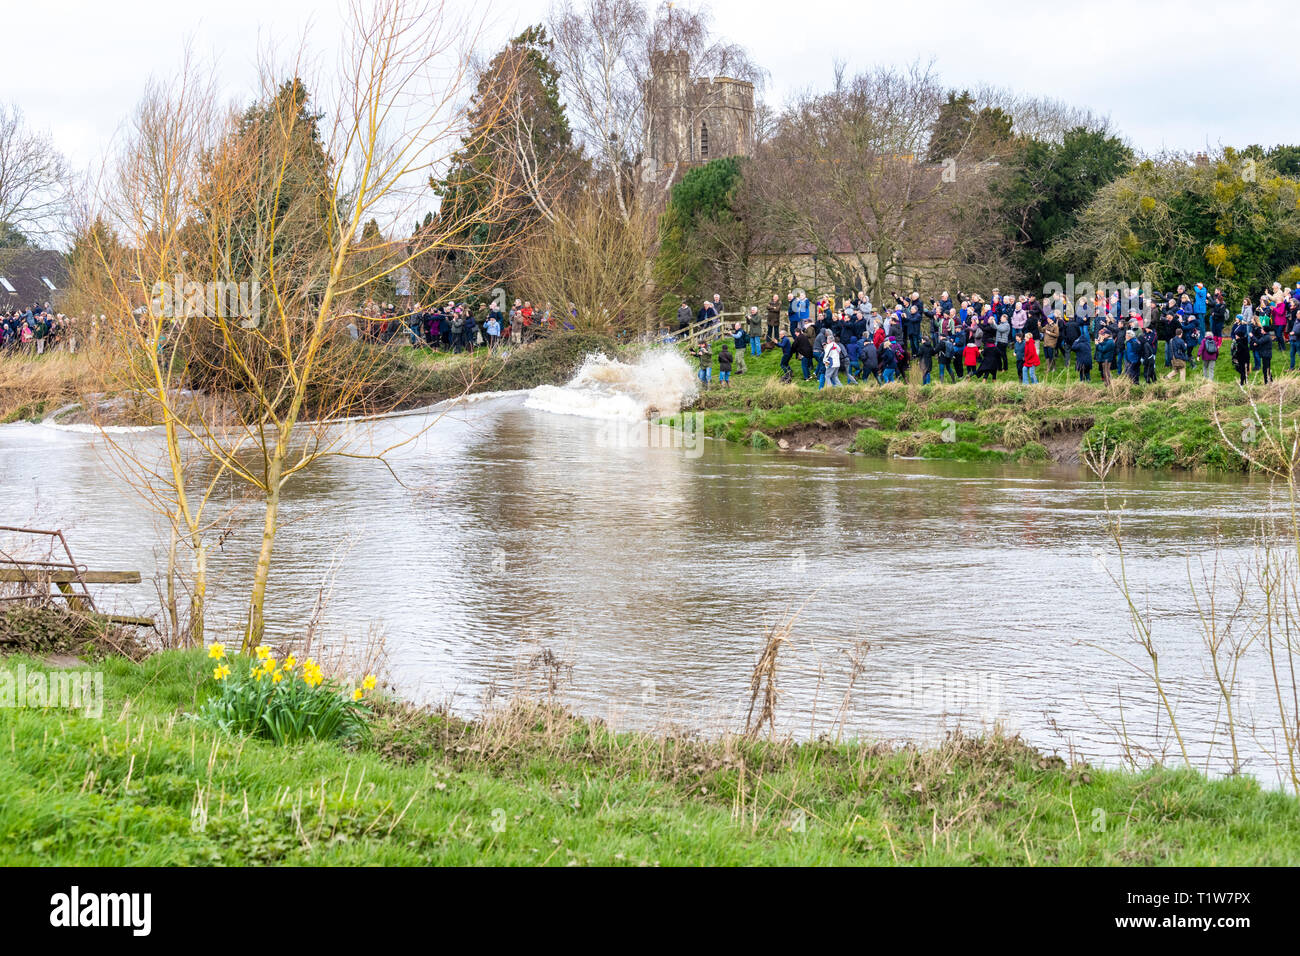 A 5 star Severn Bore on 22/3/2019 breaking against the bank and soaking onlookers at Minsterworth, Gloucestershire UK - Stock Image